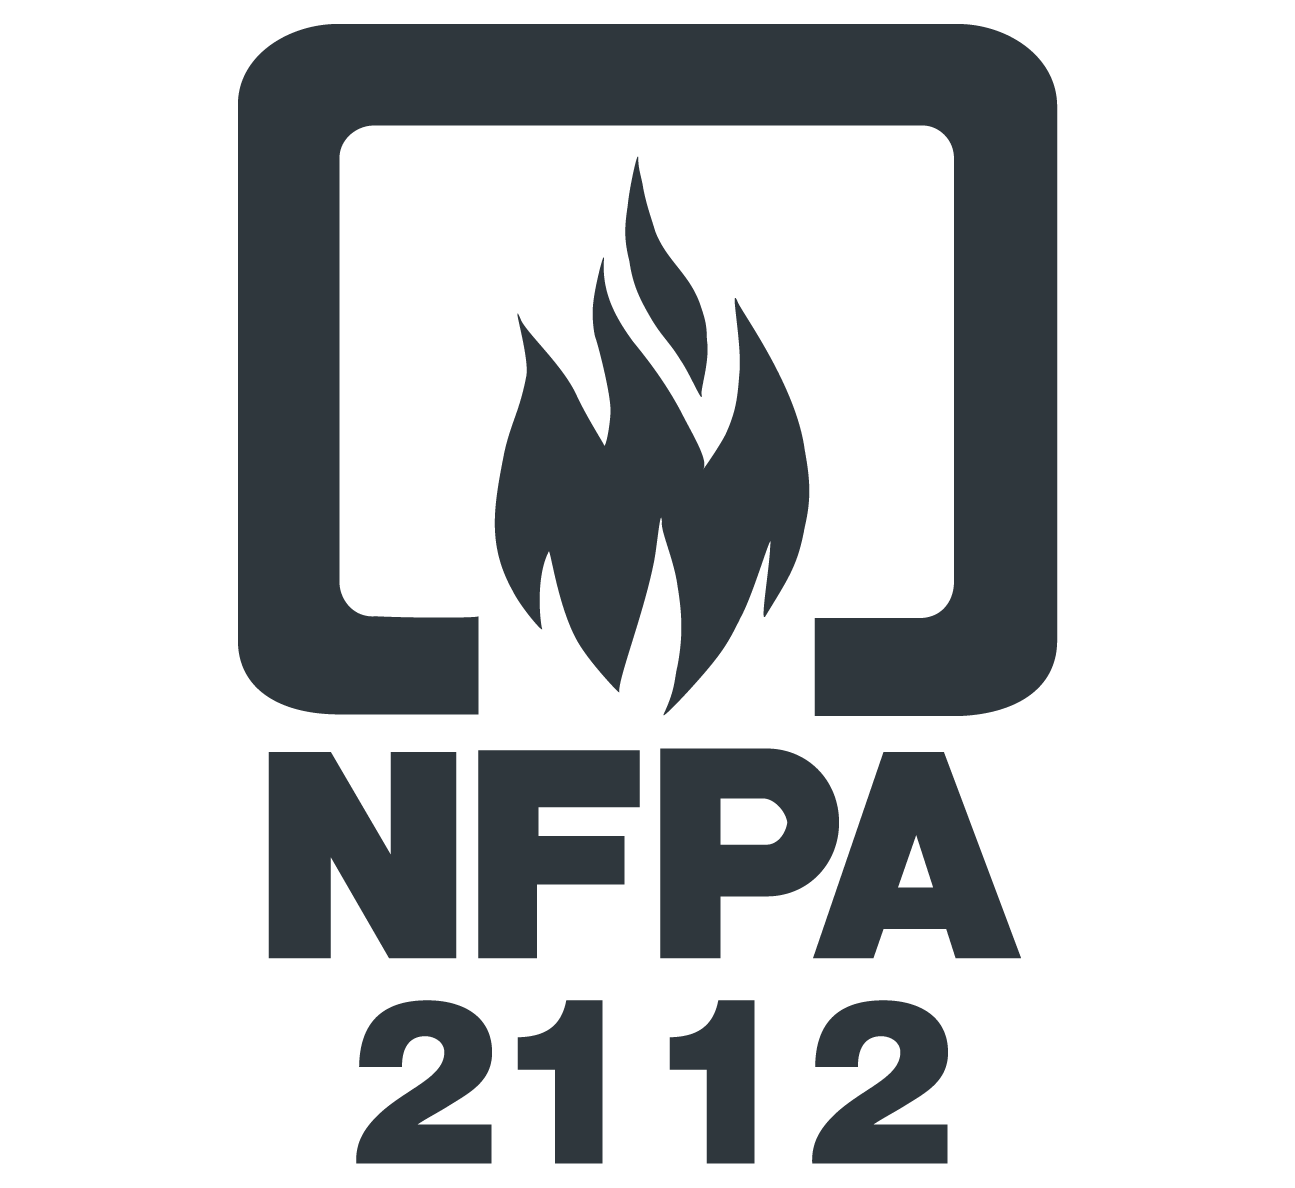 NFPA 2112 protection fabric